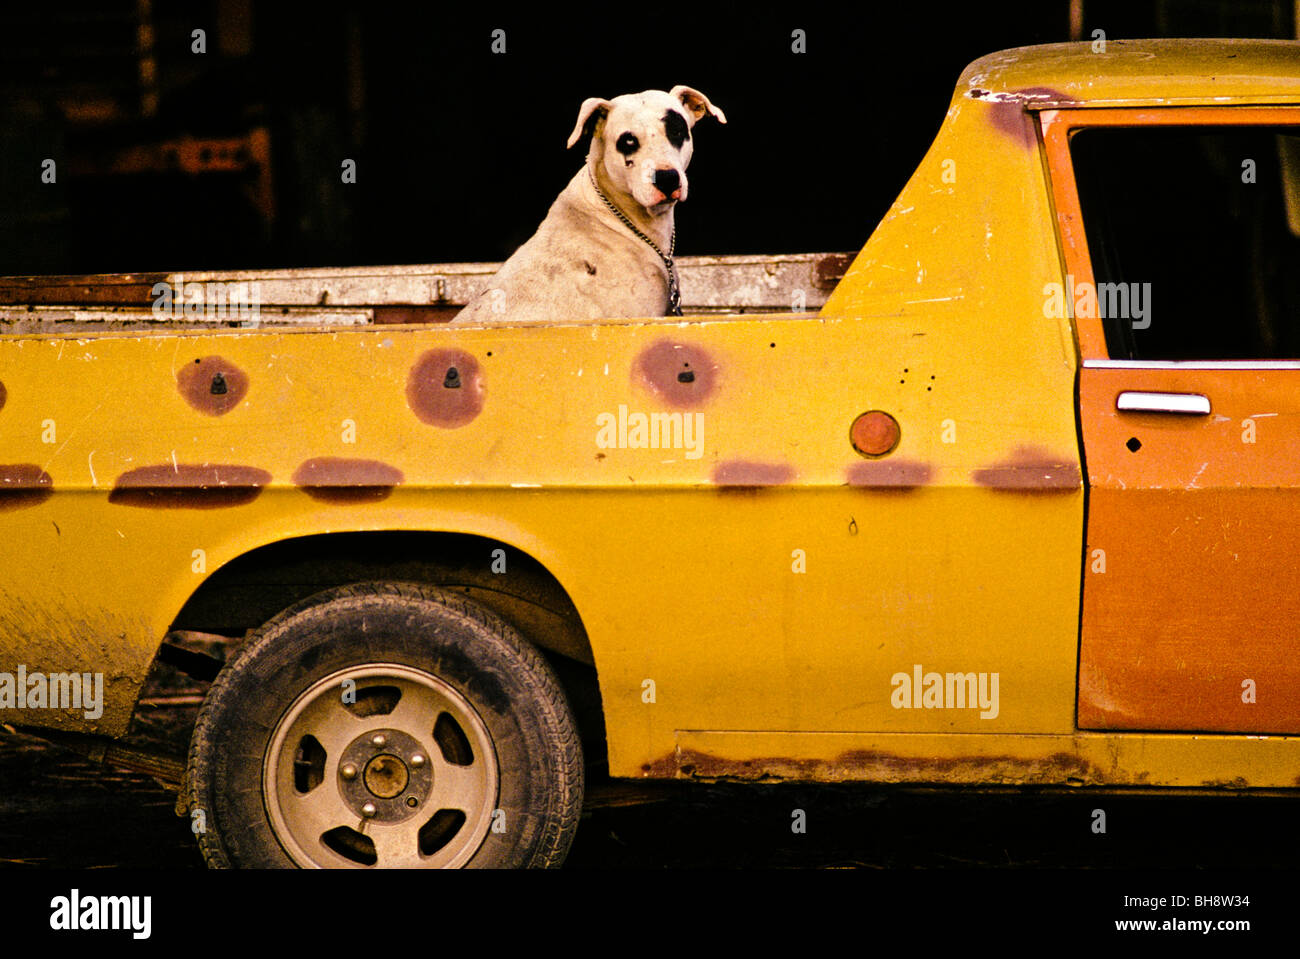 Spotted dog in back of ute Queensland Australia - Stock Image